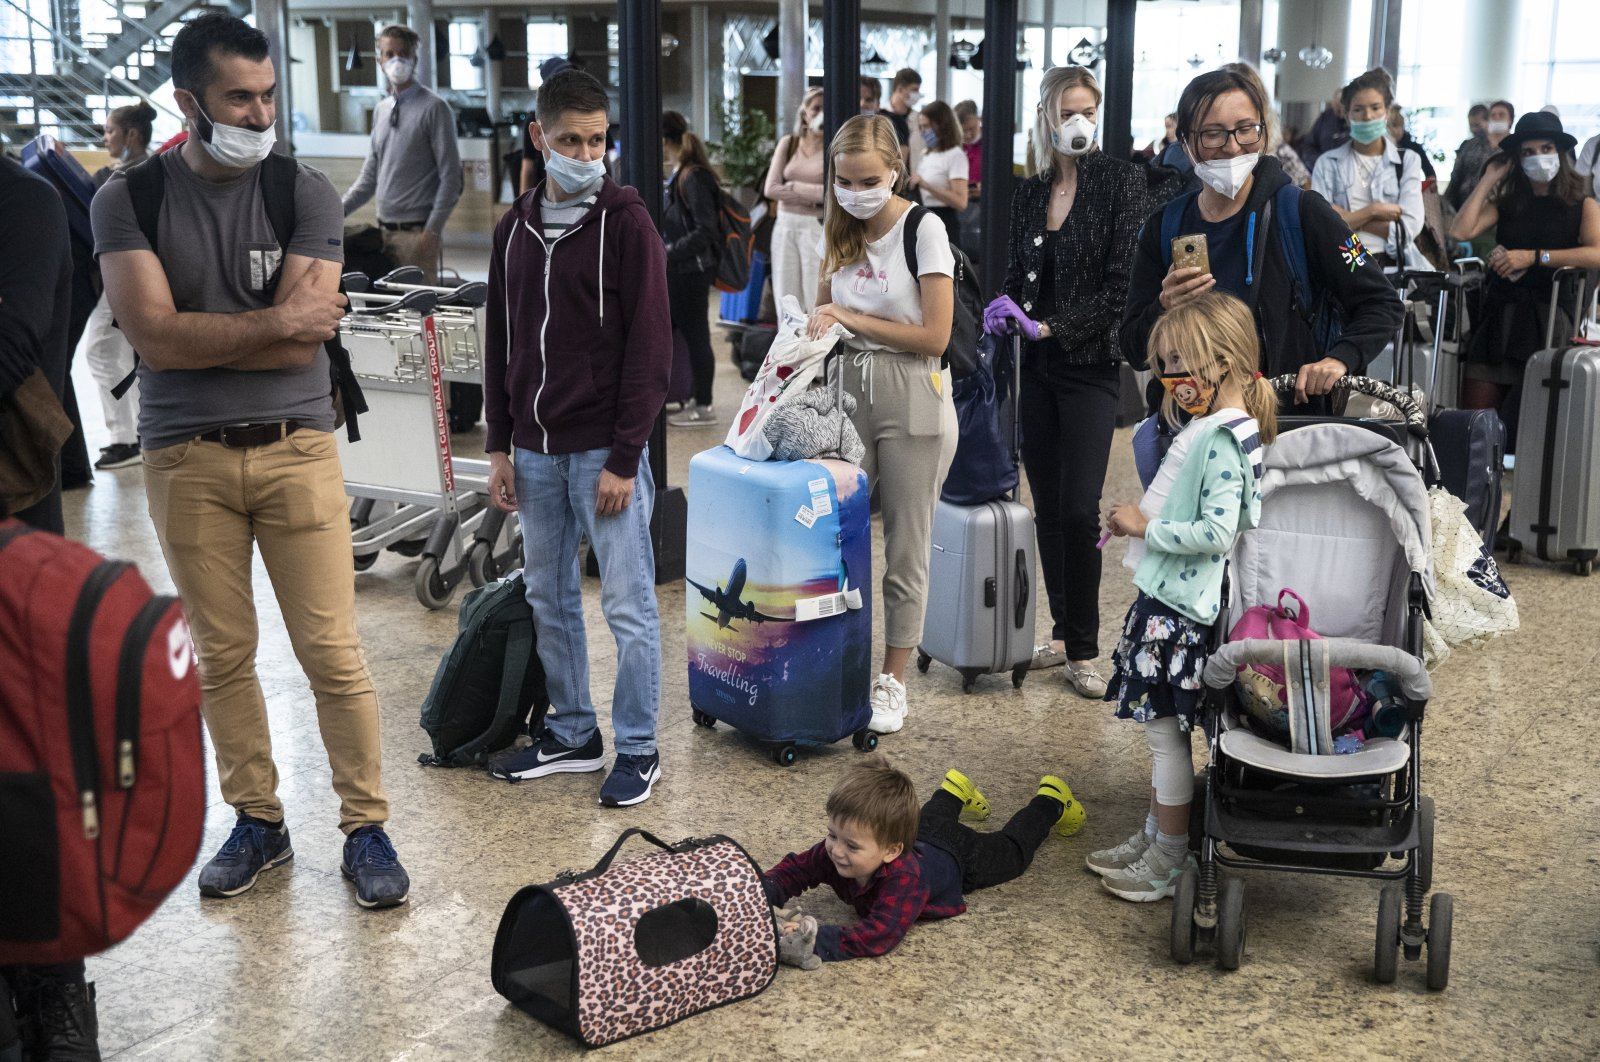 A child plays with a pet as people wait in line to check-in at Sheremetyevo International Airport, outside Moscow, Russia, Aug. 1, 2020. (AP File Photo)